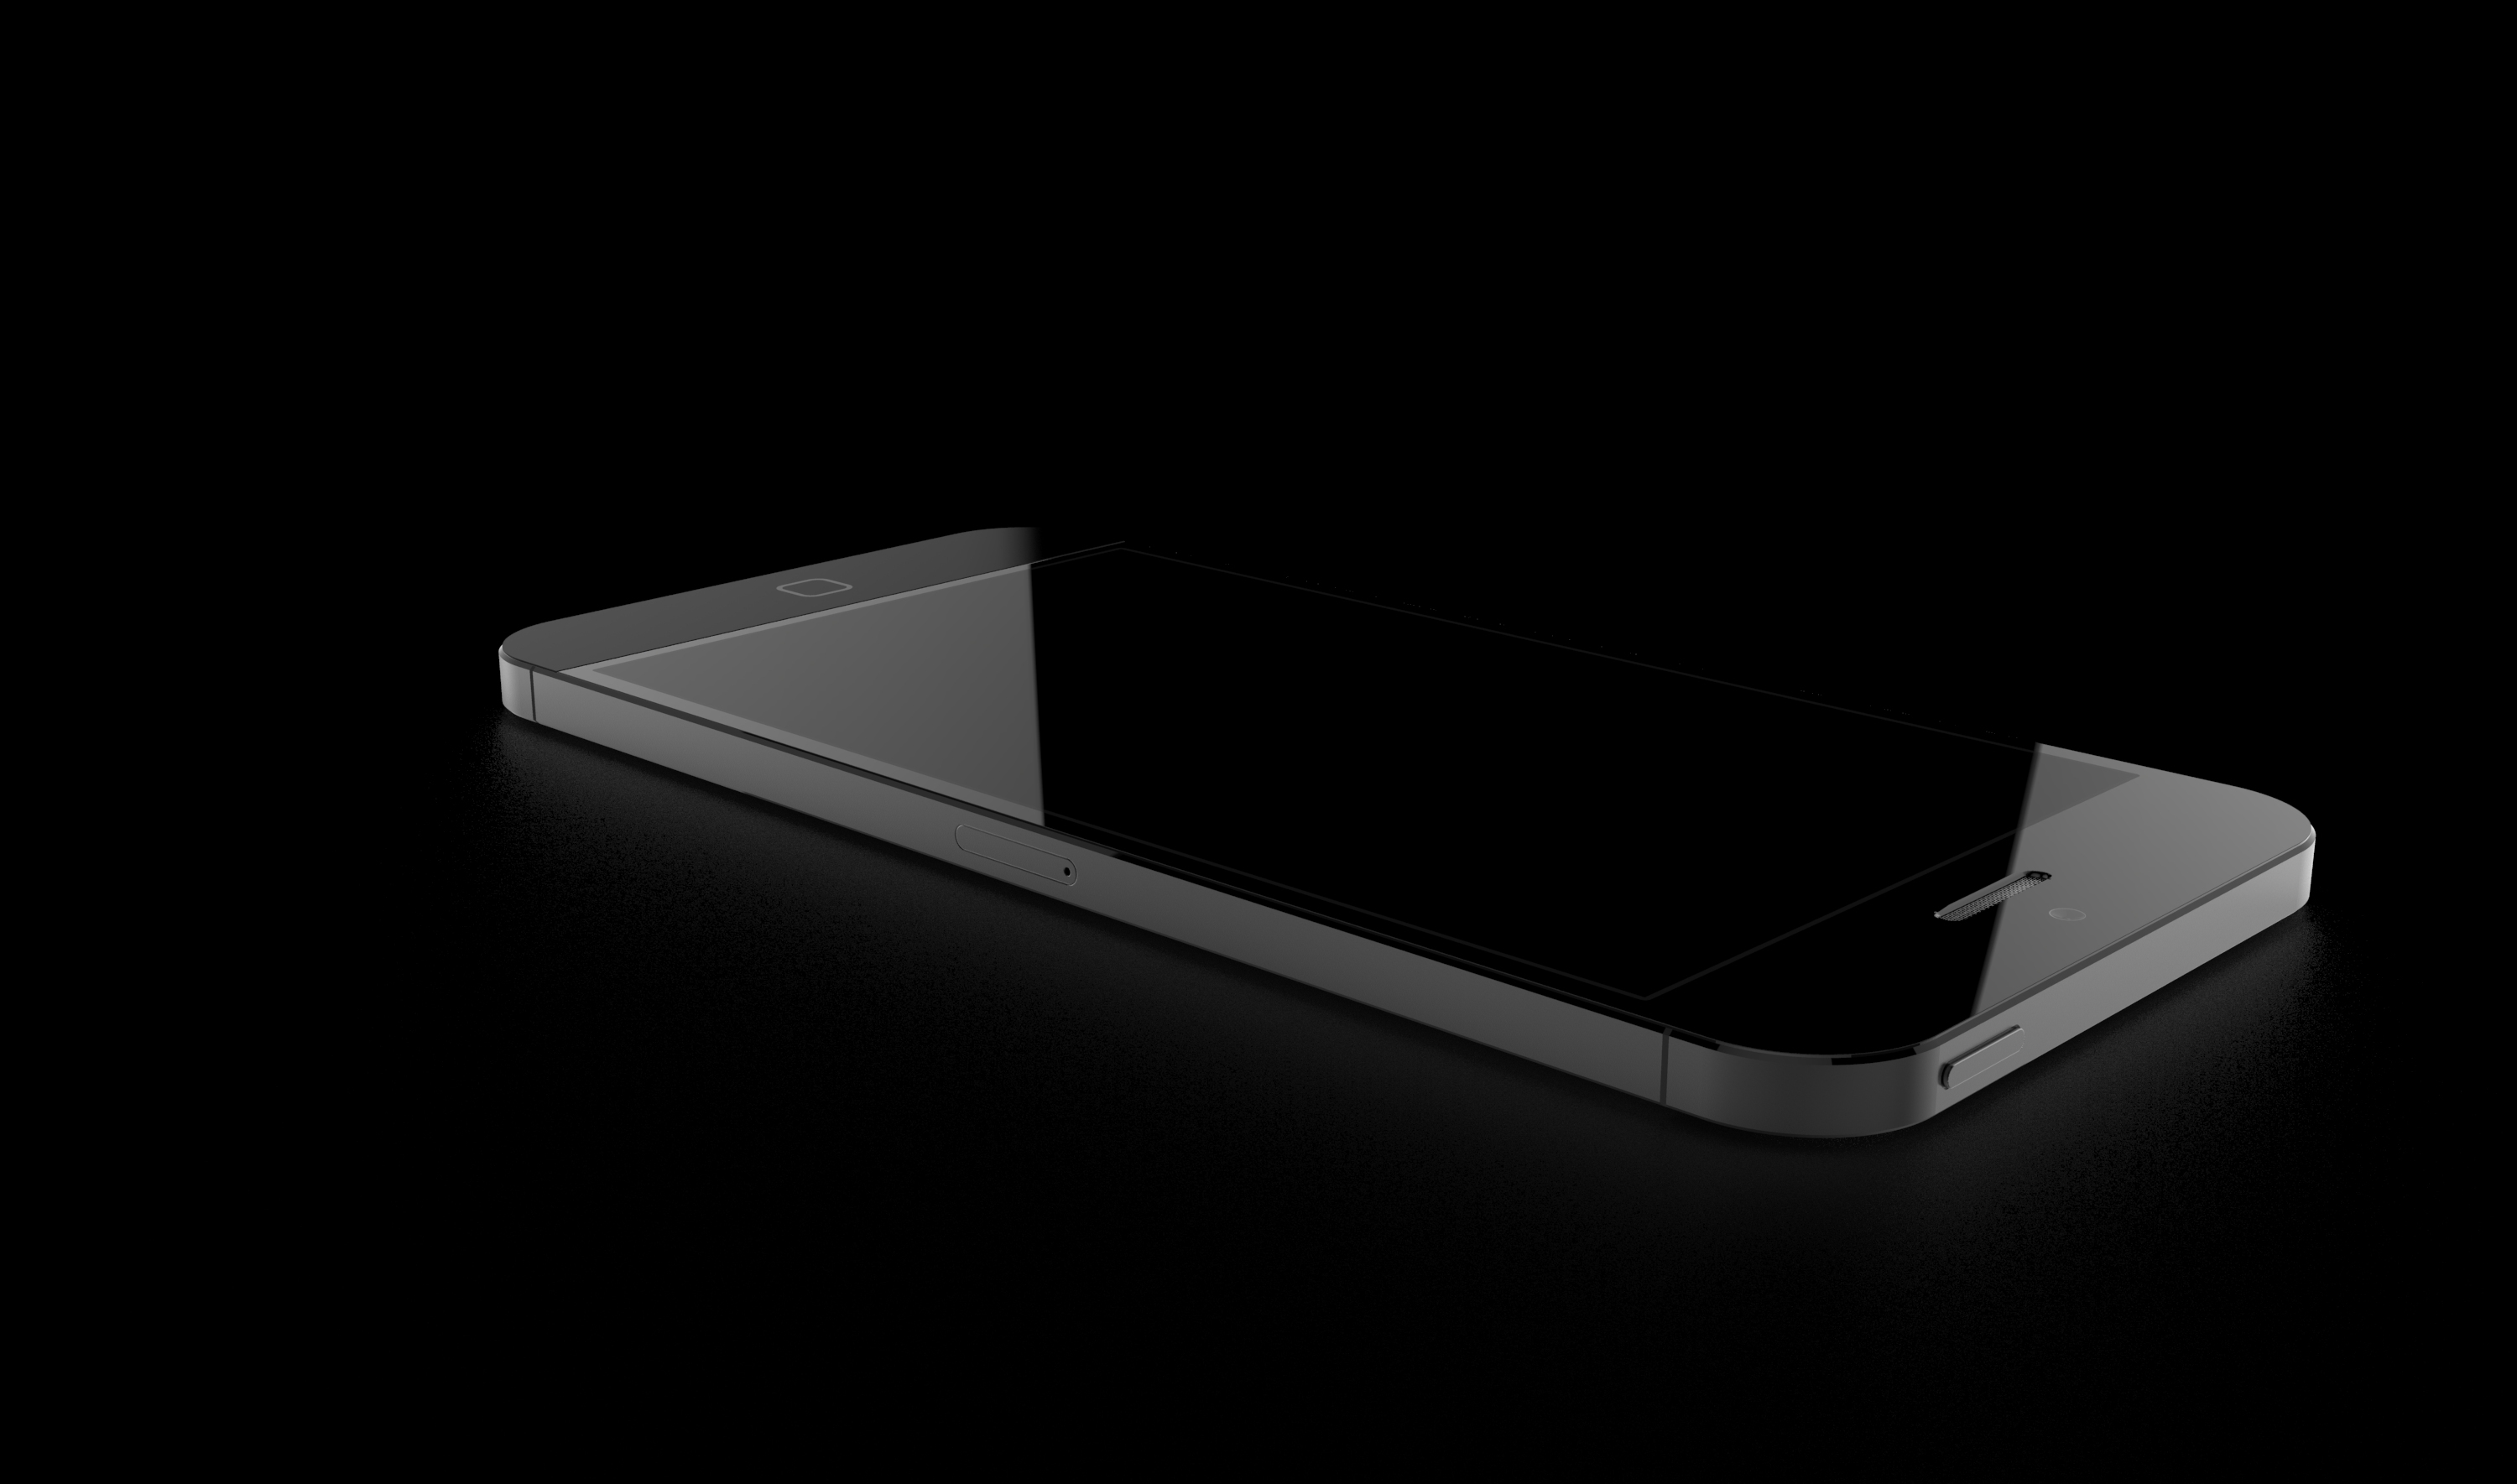 Black Apple iPhone 6 concept wallpapers and images   wallpapers 3000x1769